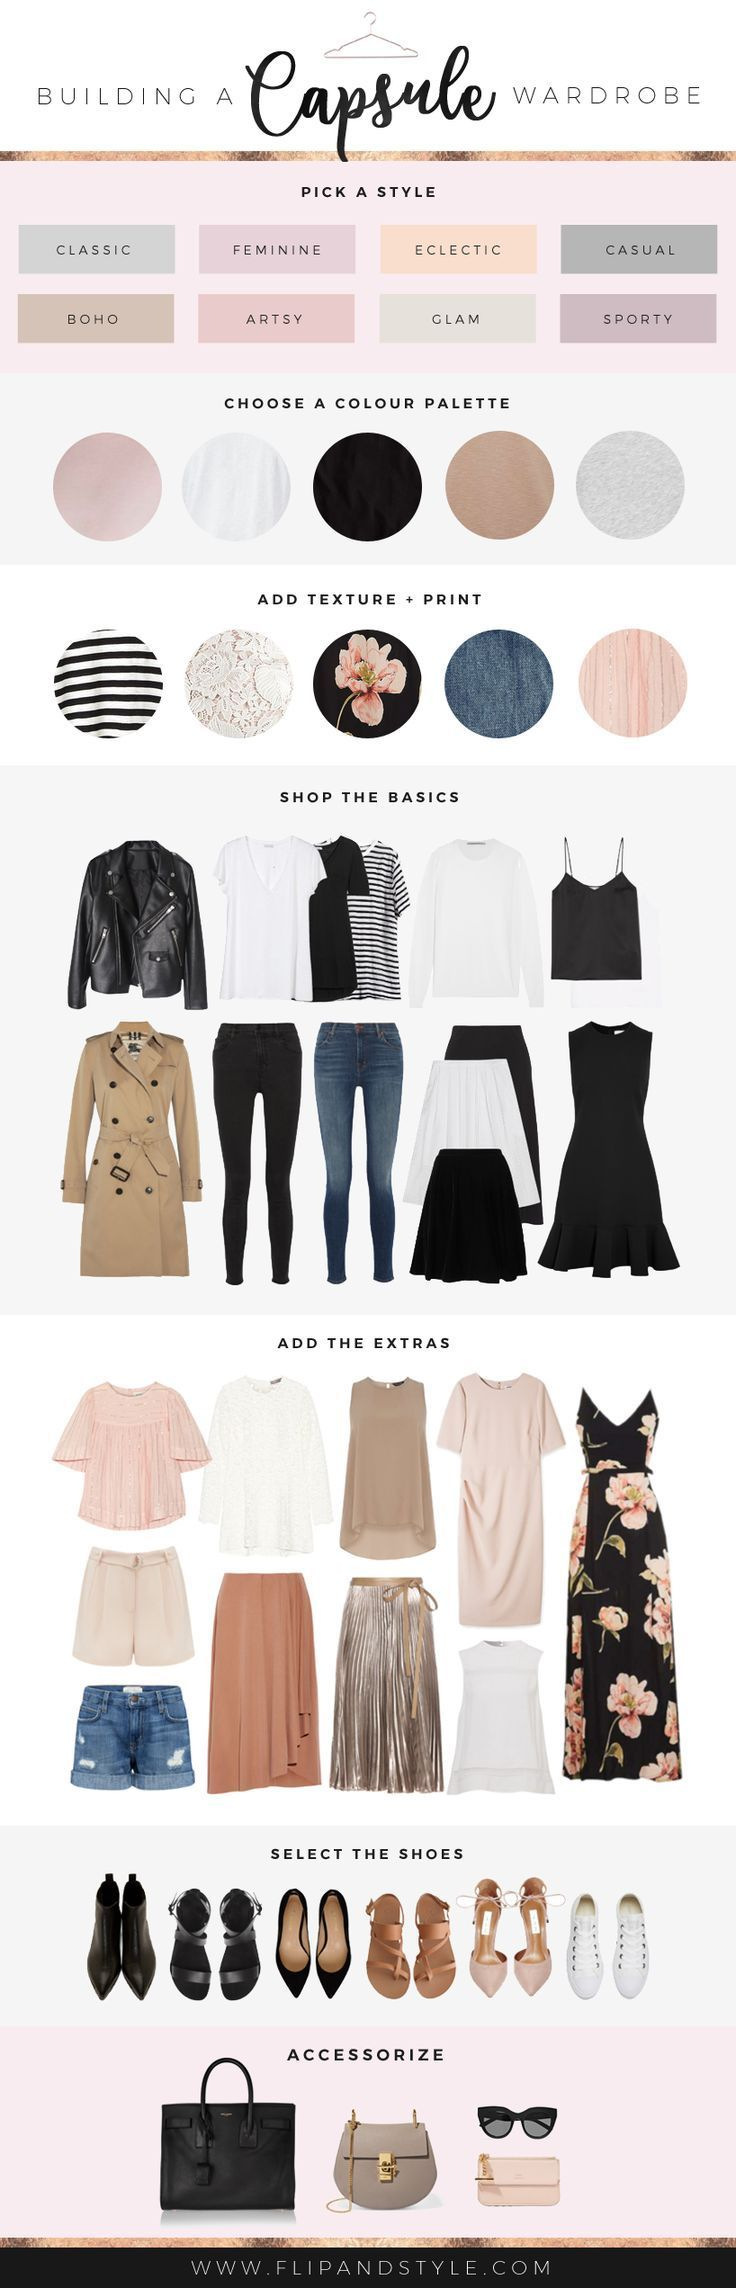 How to build a capsule wardrobe | Style essentials, outfits and staples that will last! | http://www.flipandstyle.com